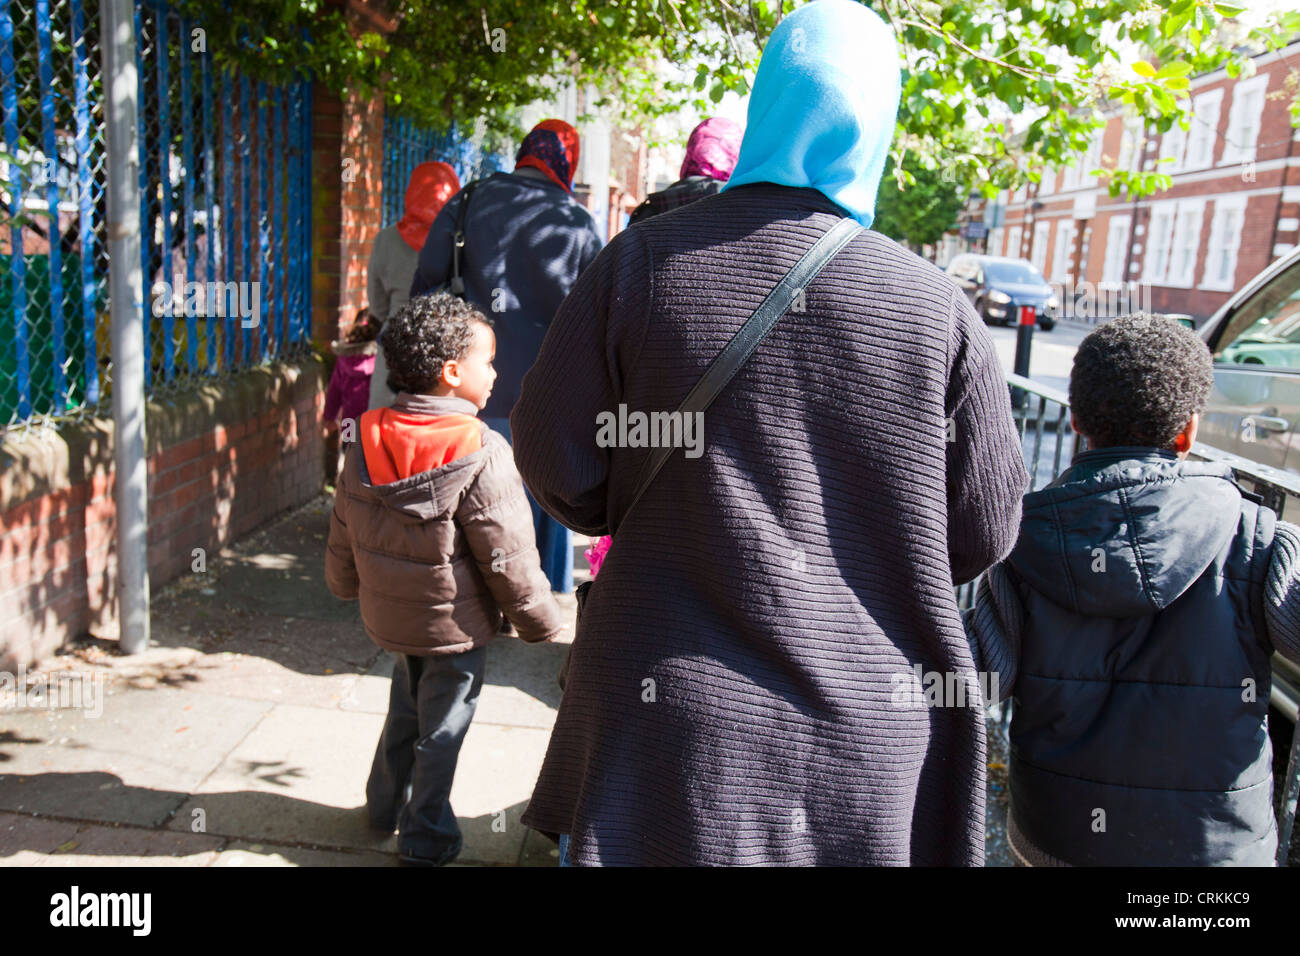 Muslim mothers picking their children up from infant school in Queens Park, London, UK. - Stock Image